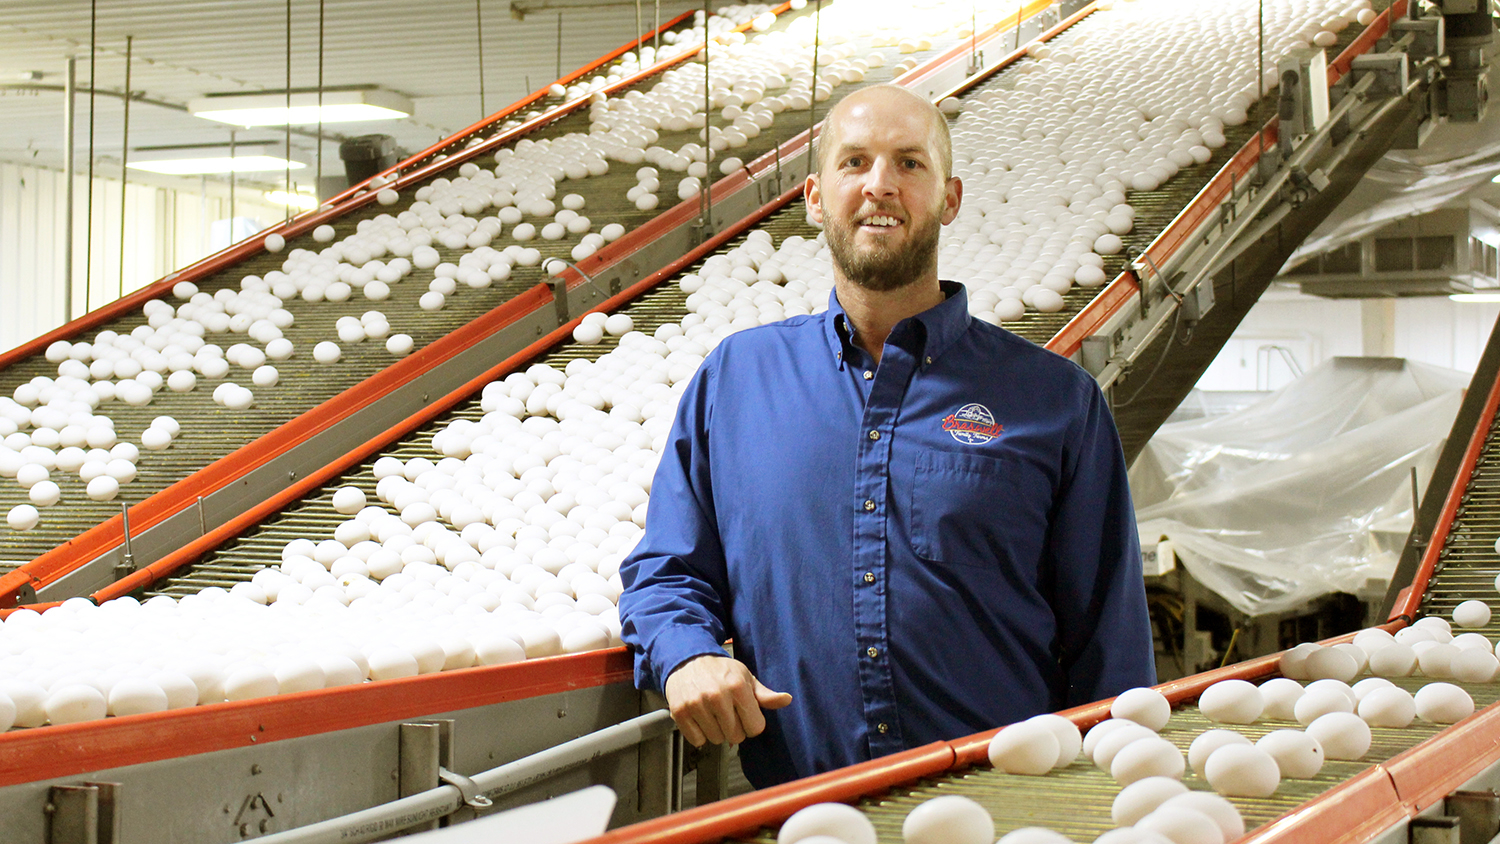 Man standing in an egg factory